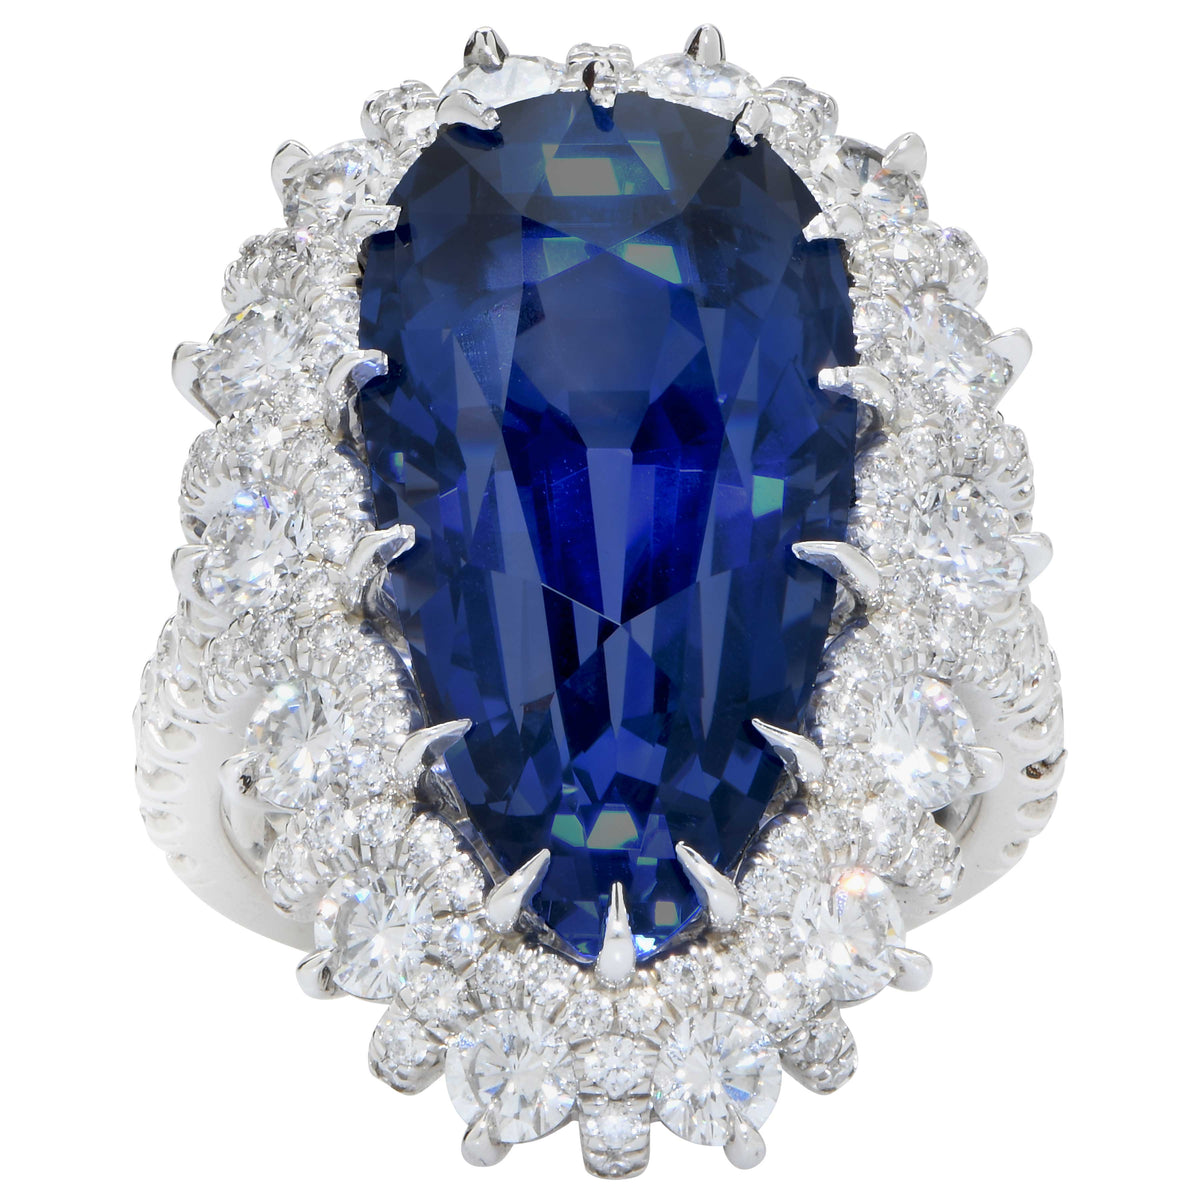 19 Carat AGL Graded Pear Shaped Sapphire and Diamond Ring